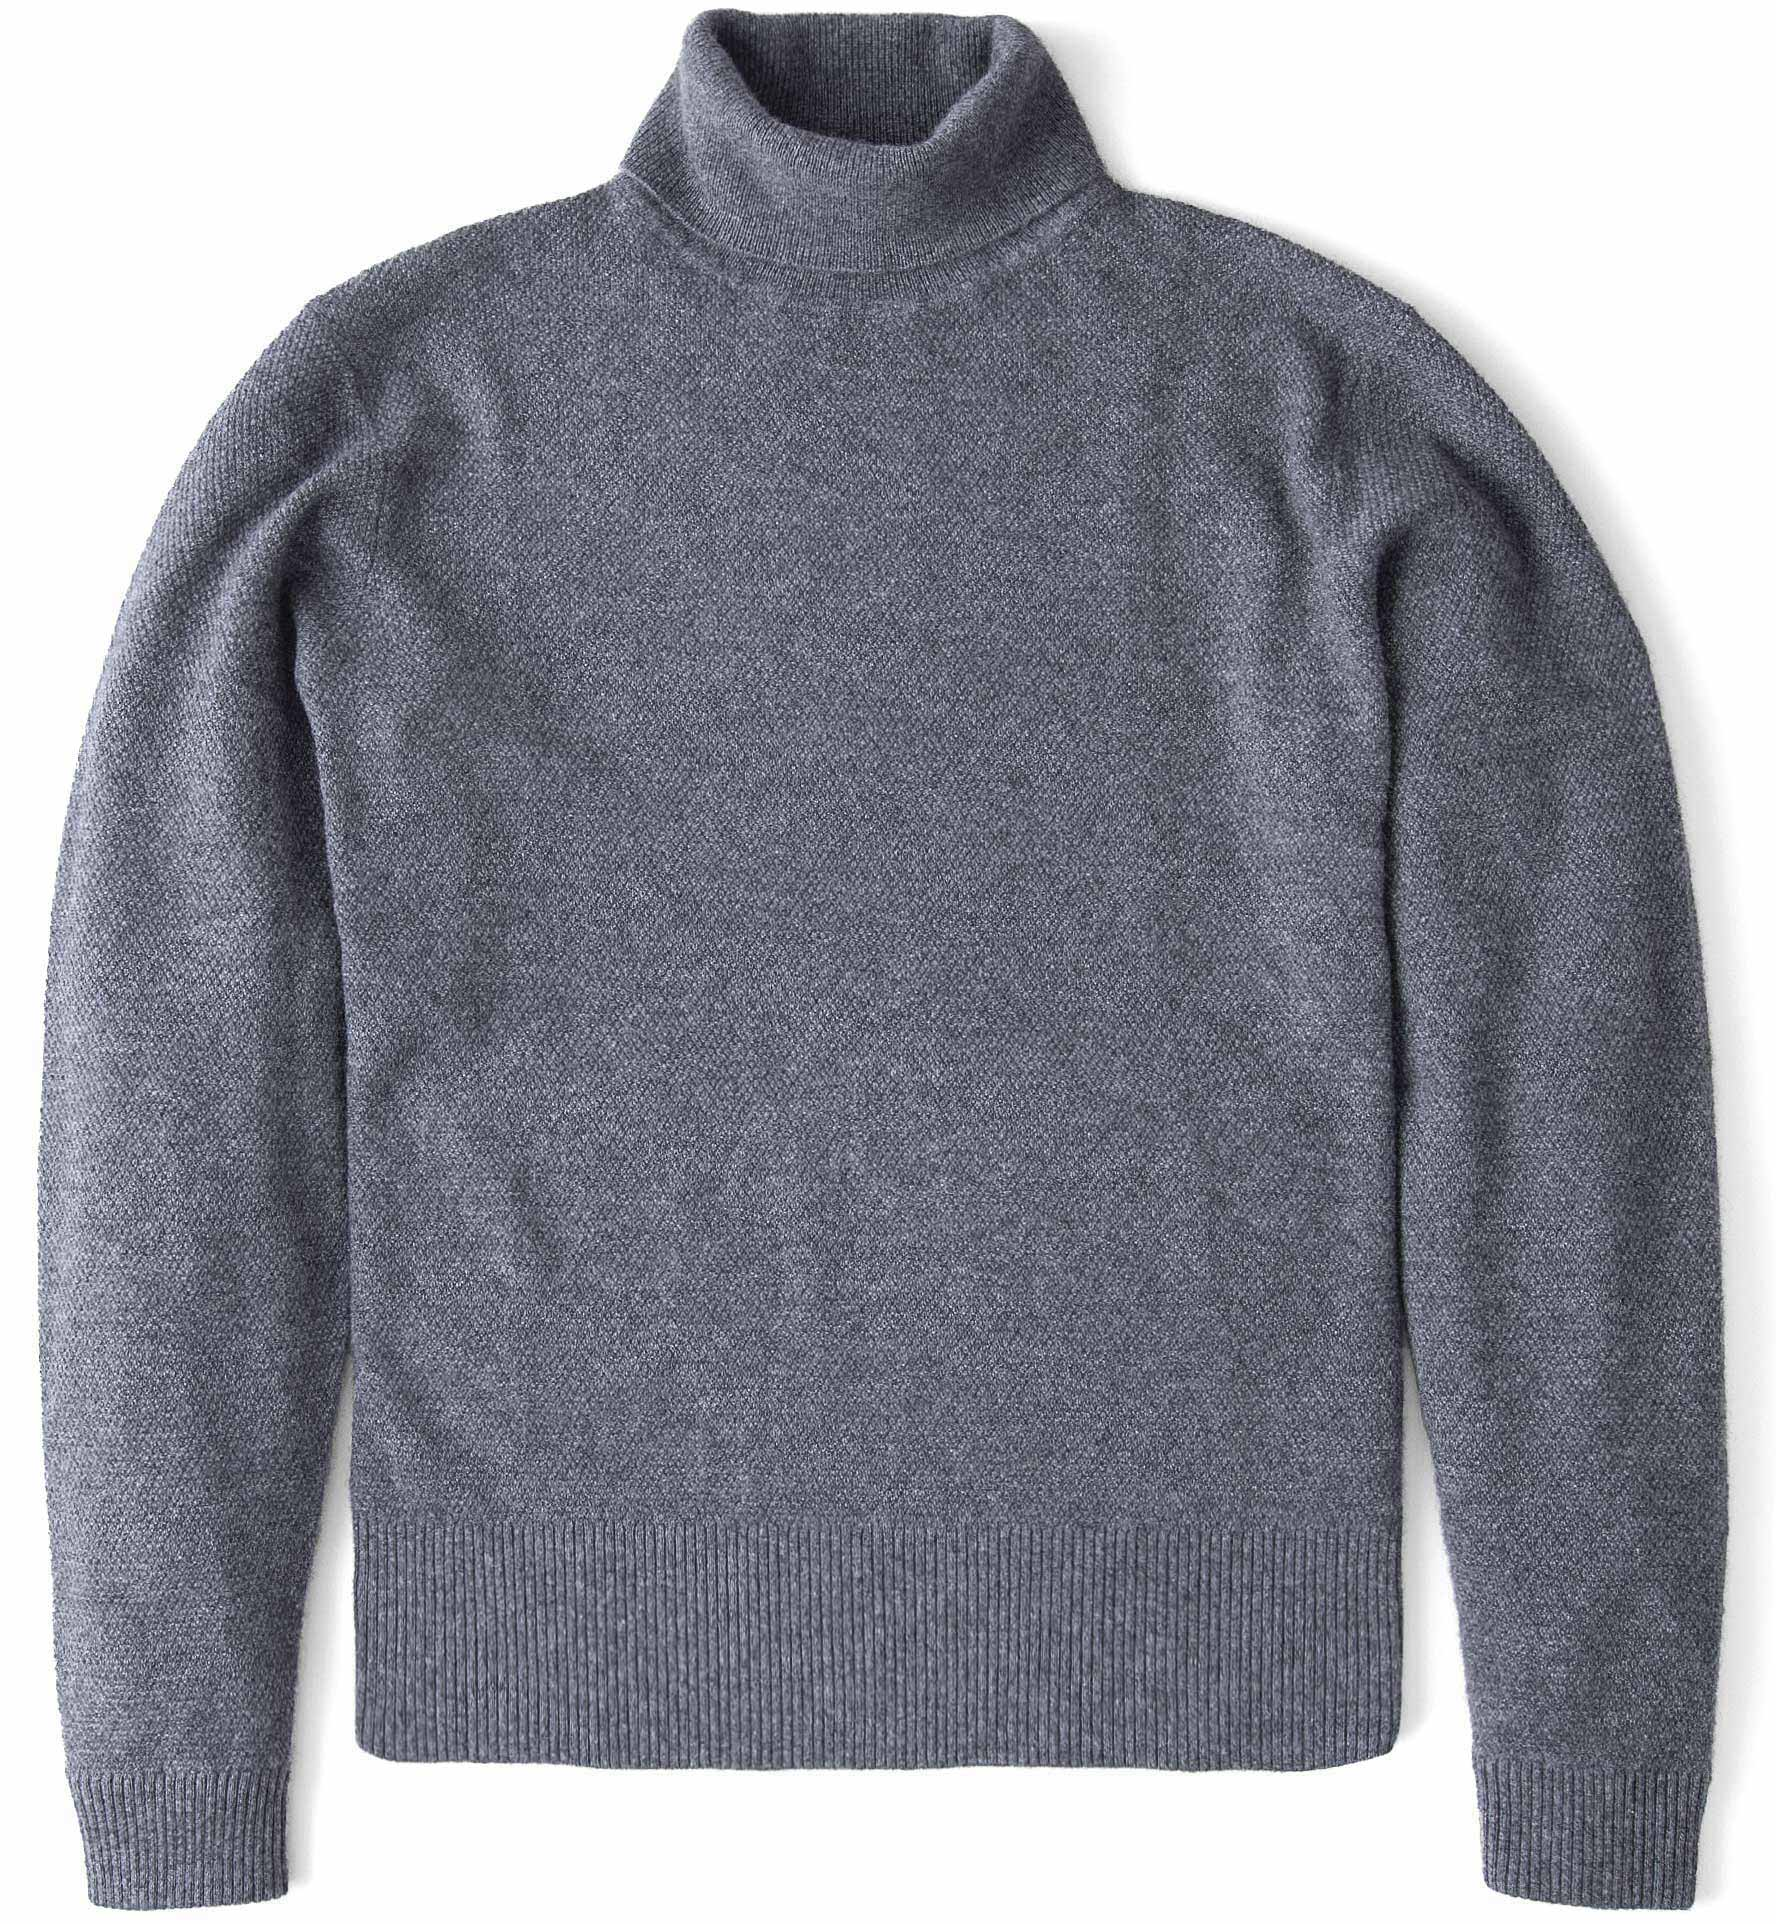 Zoom Image of Grey Cobble Stitch Cashmere Turtleneck Sweater